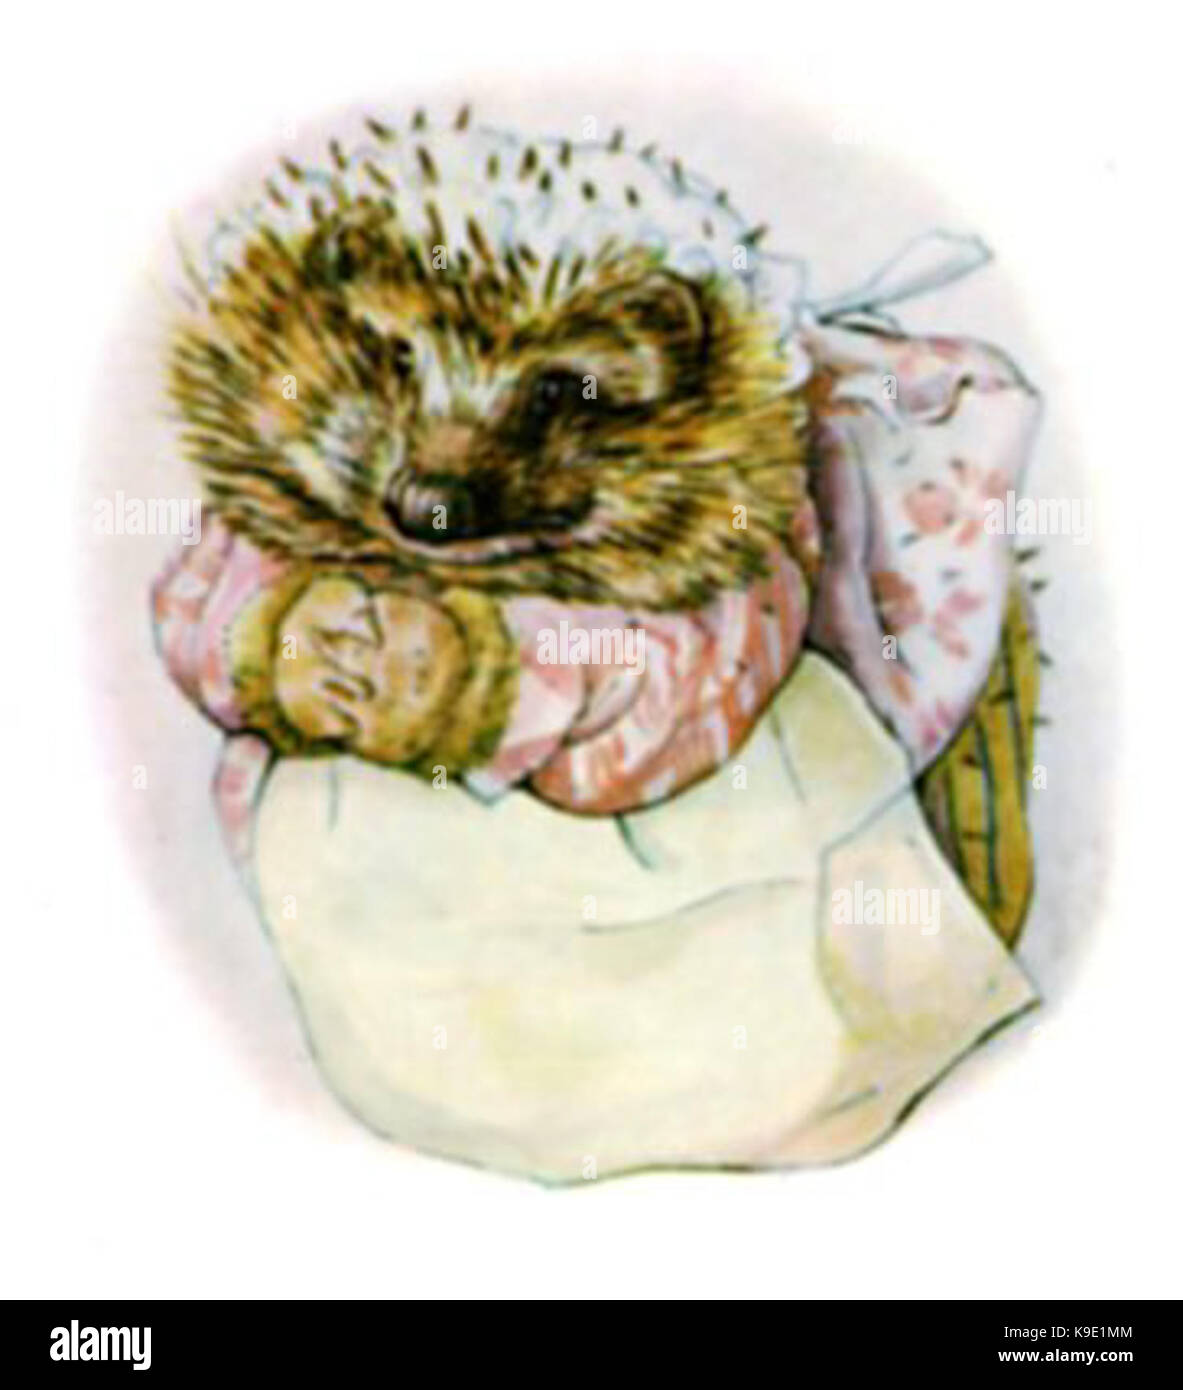 Mrs tiggy winkle cover - Stock Image